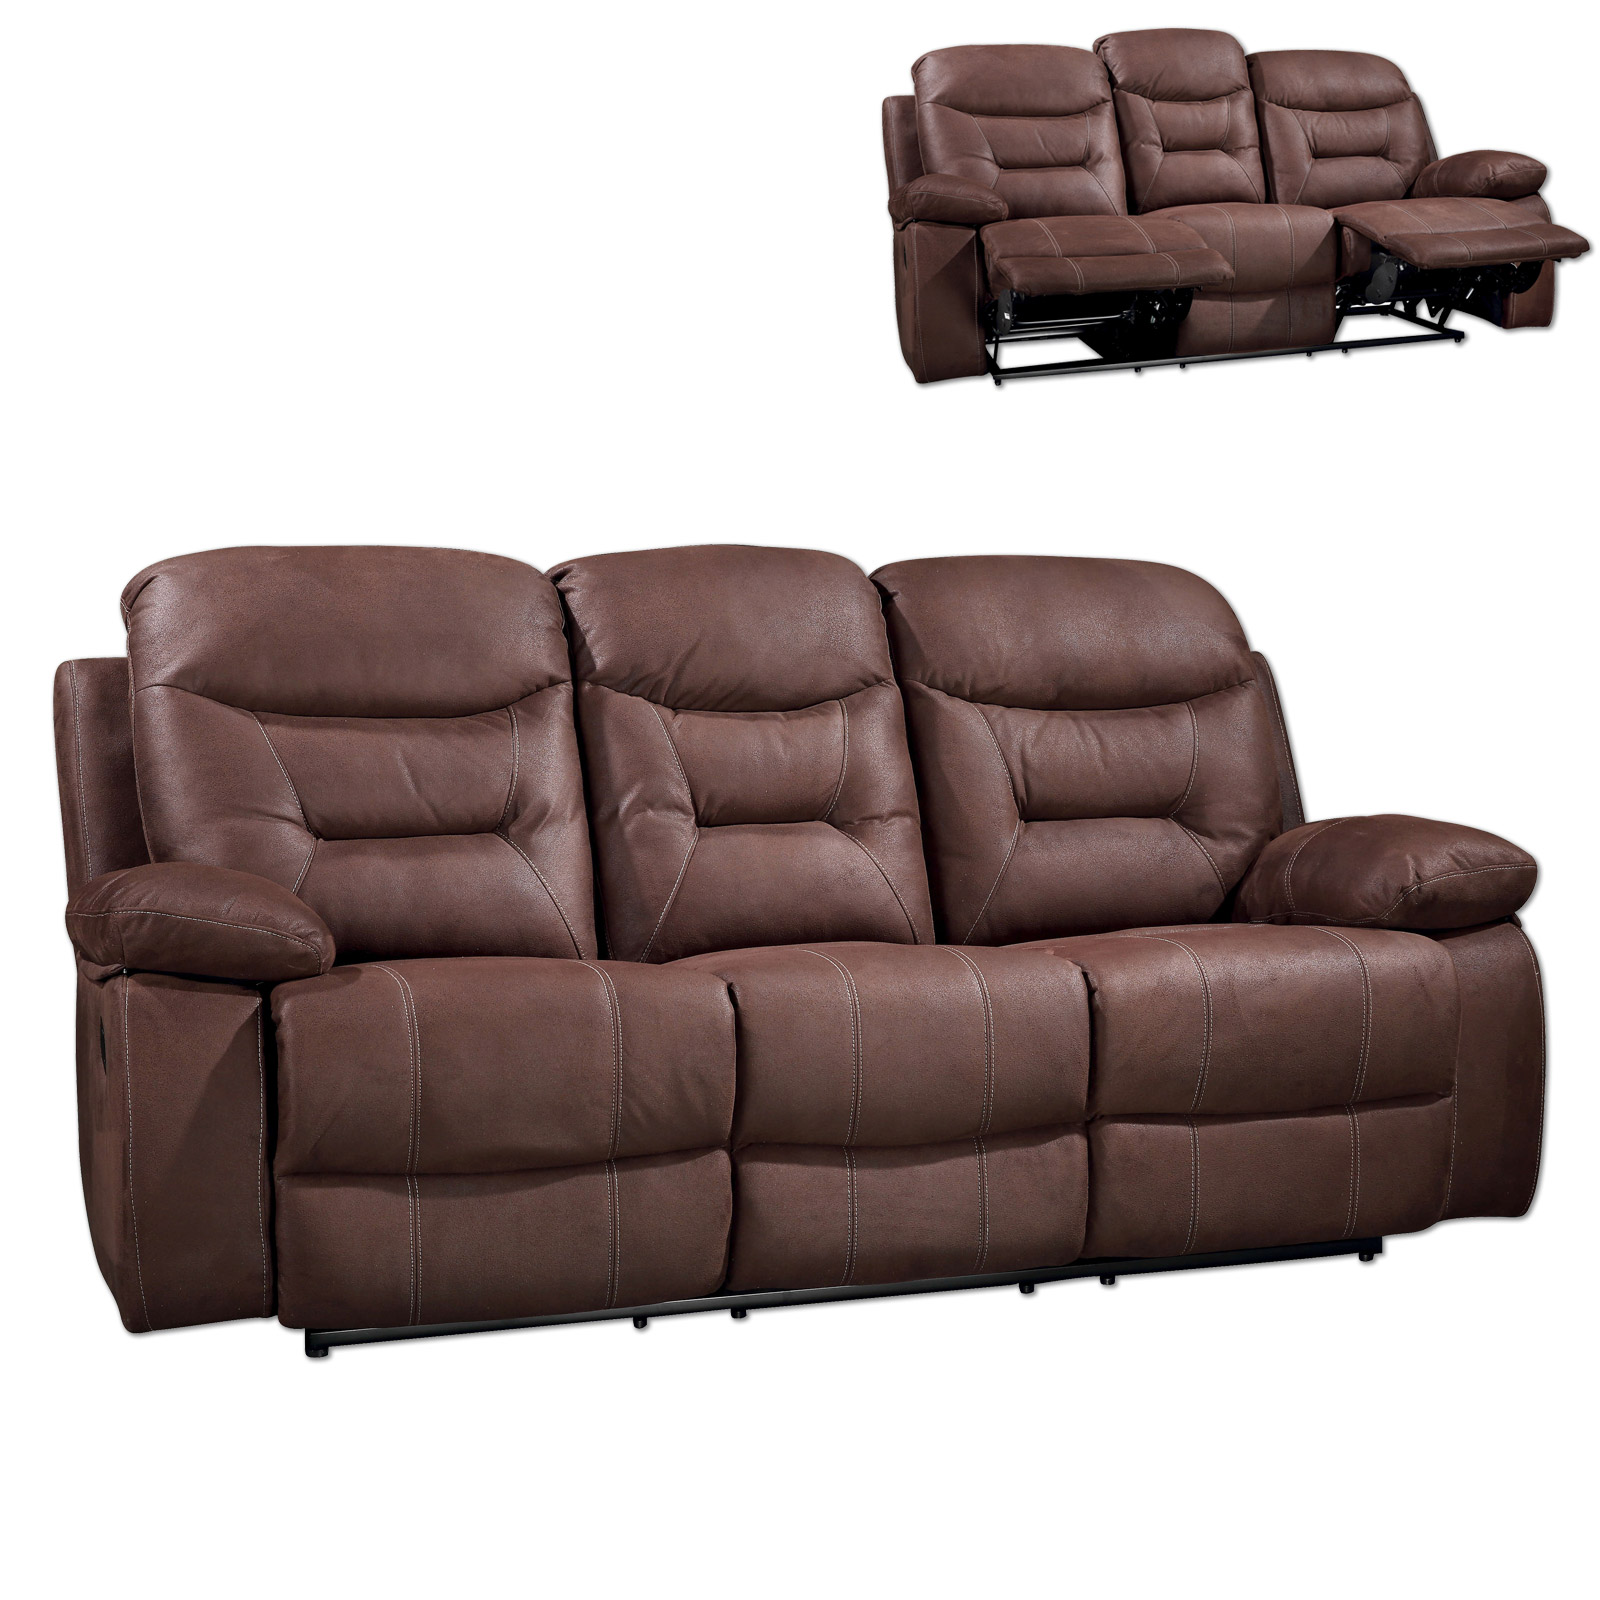 Sofa 3 Sitzer Mit Sessel 3 Sitzer Sofa Braun Relaxfunktion